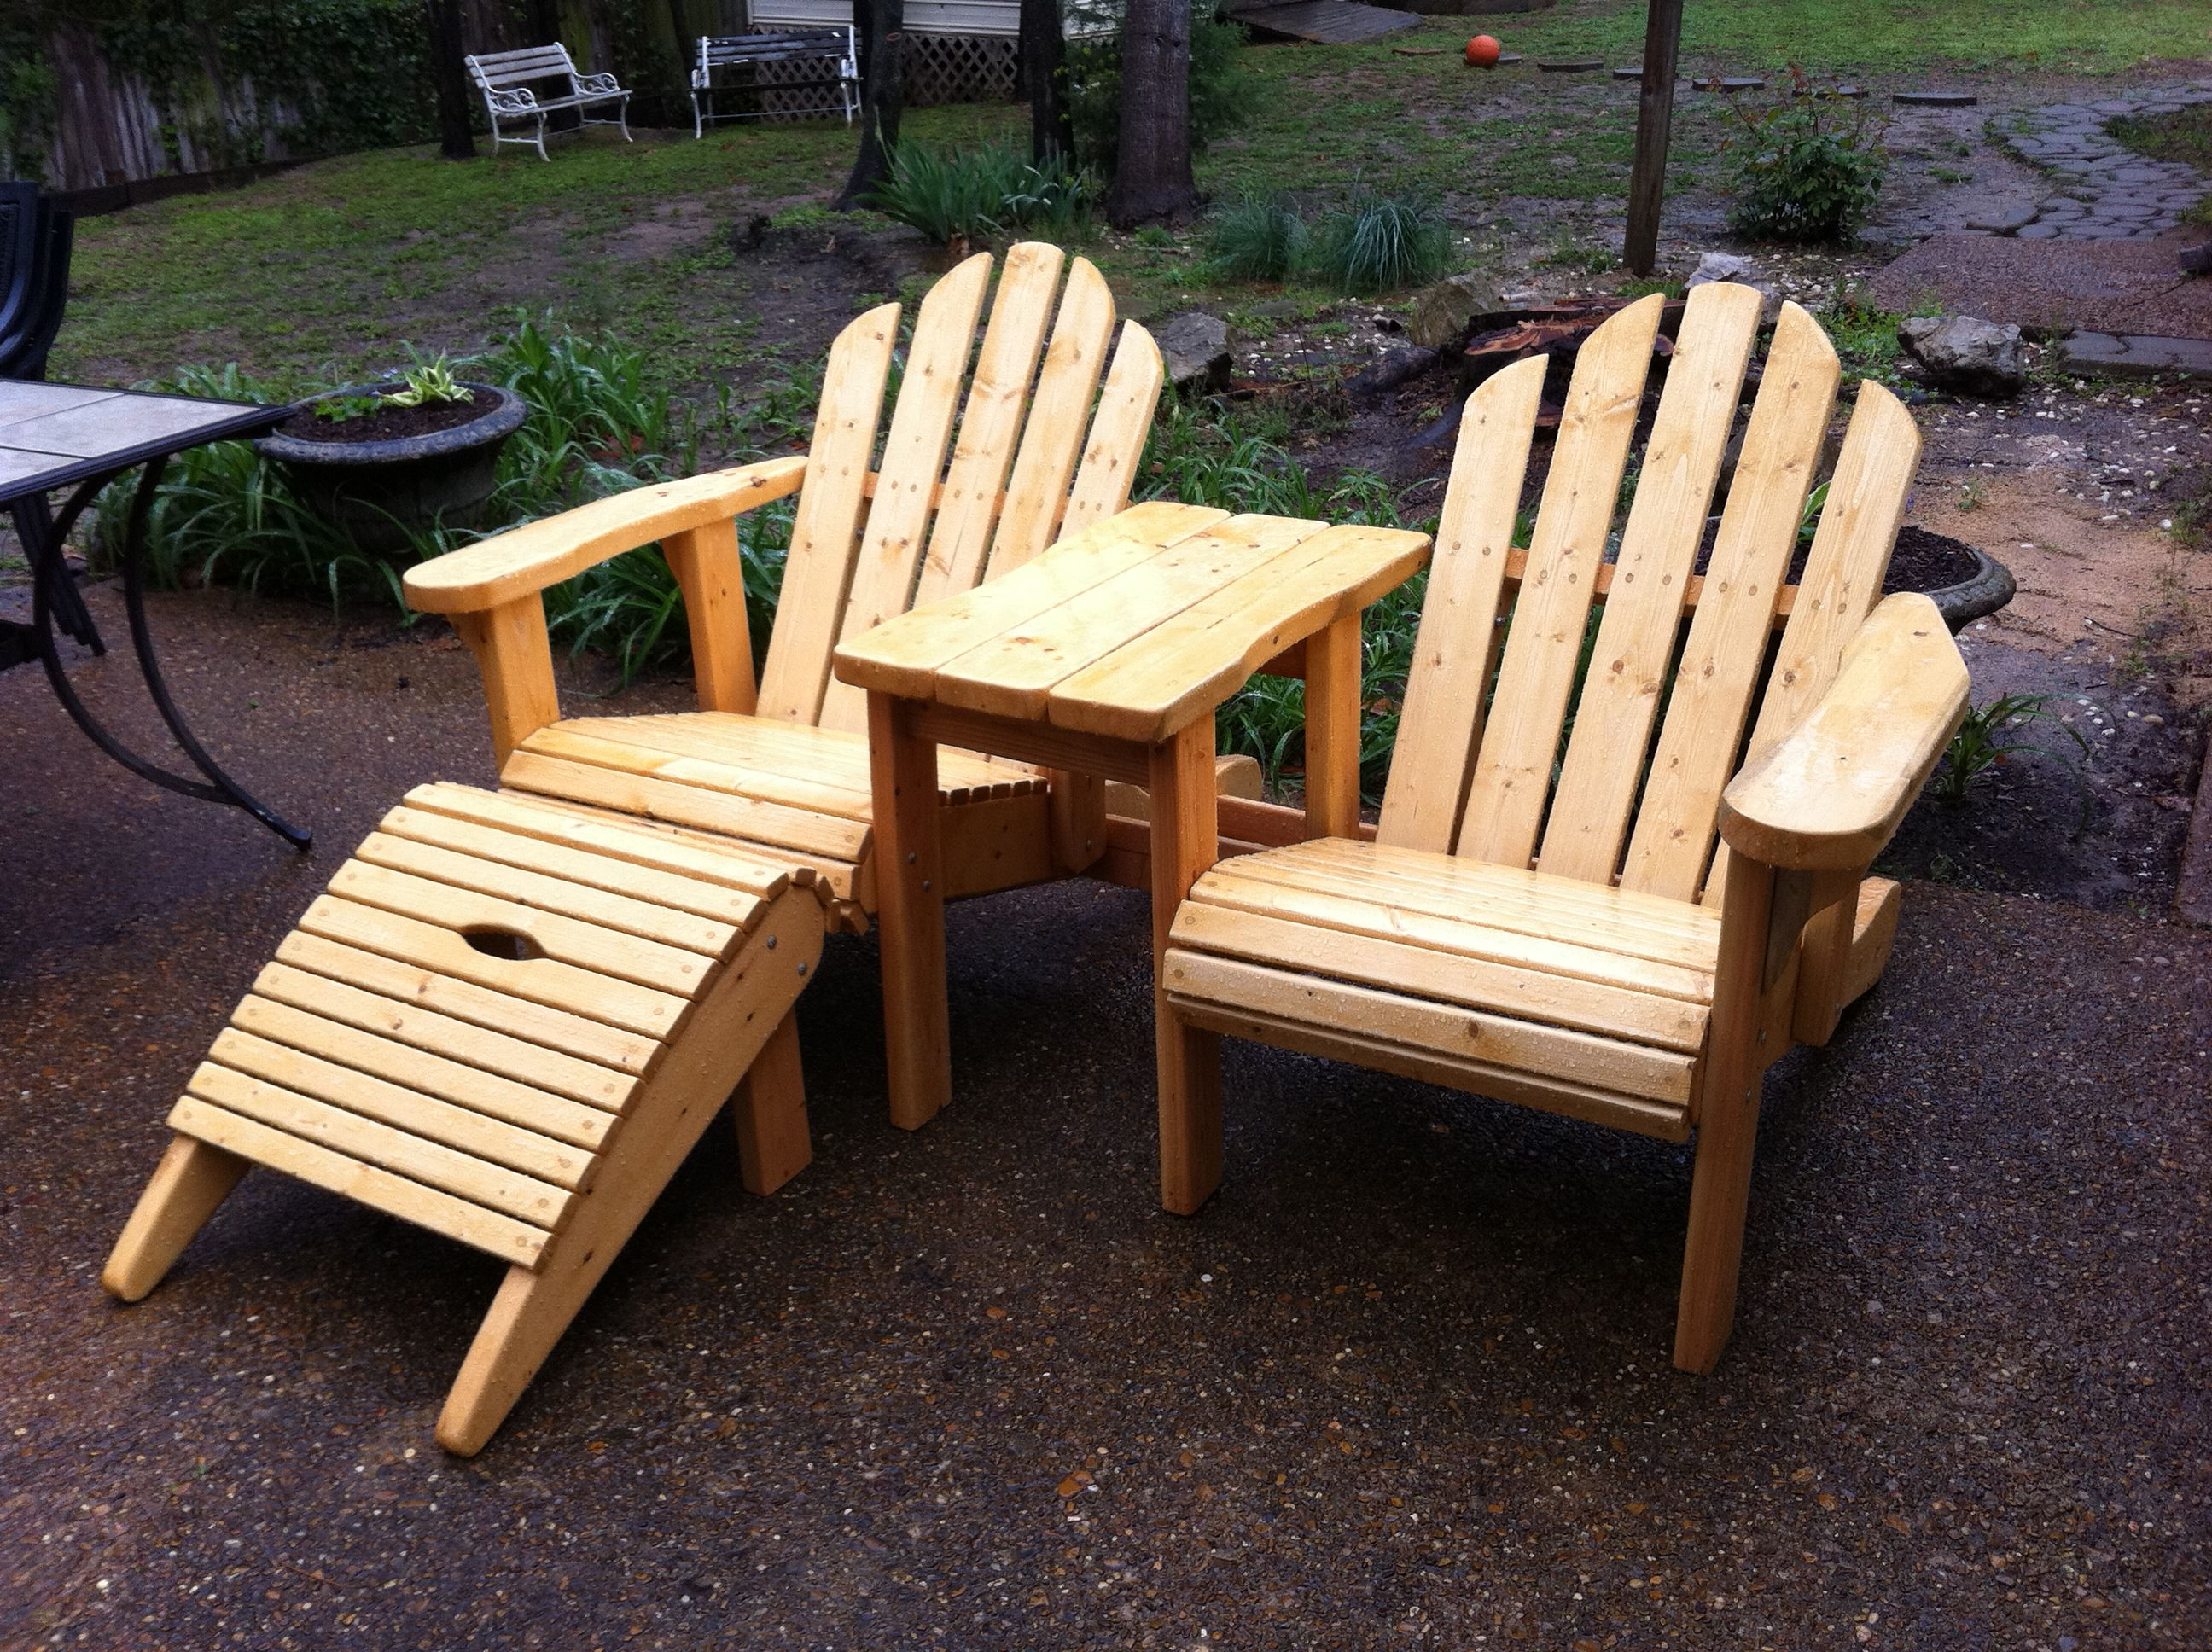 Handmade Wood Furniture When someone want to master wood working methods   look at http. Handmade Wood Furniture When someone want to master wood working